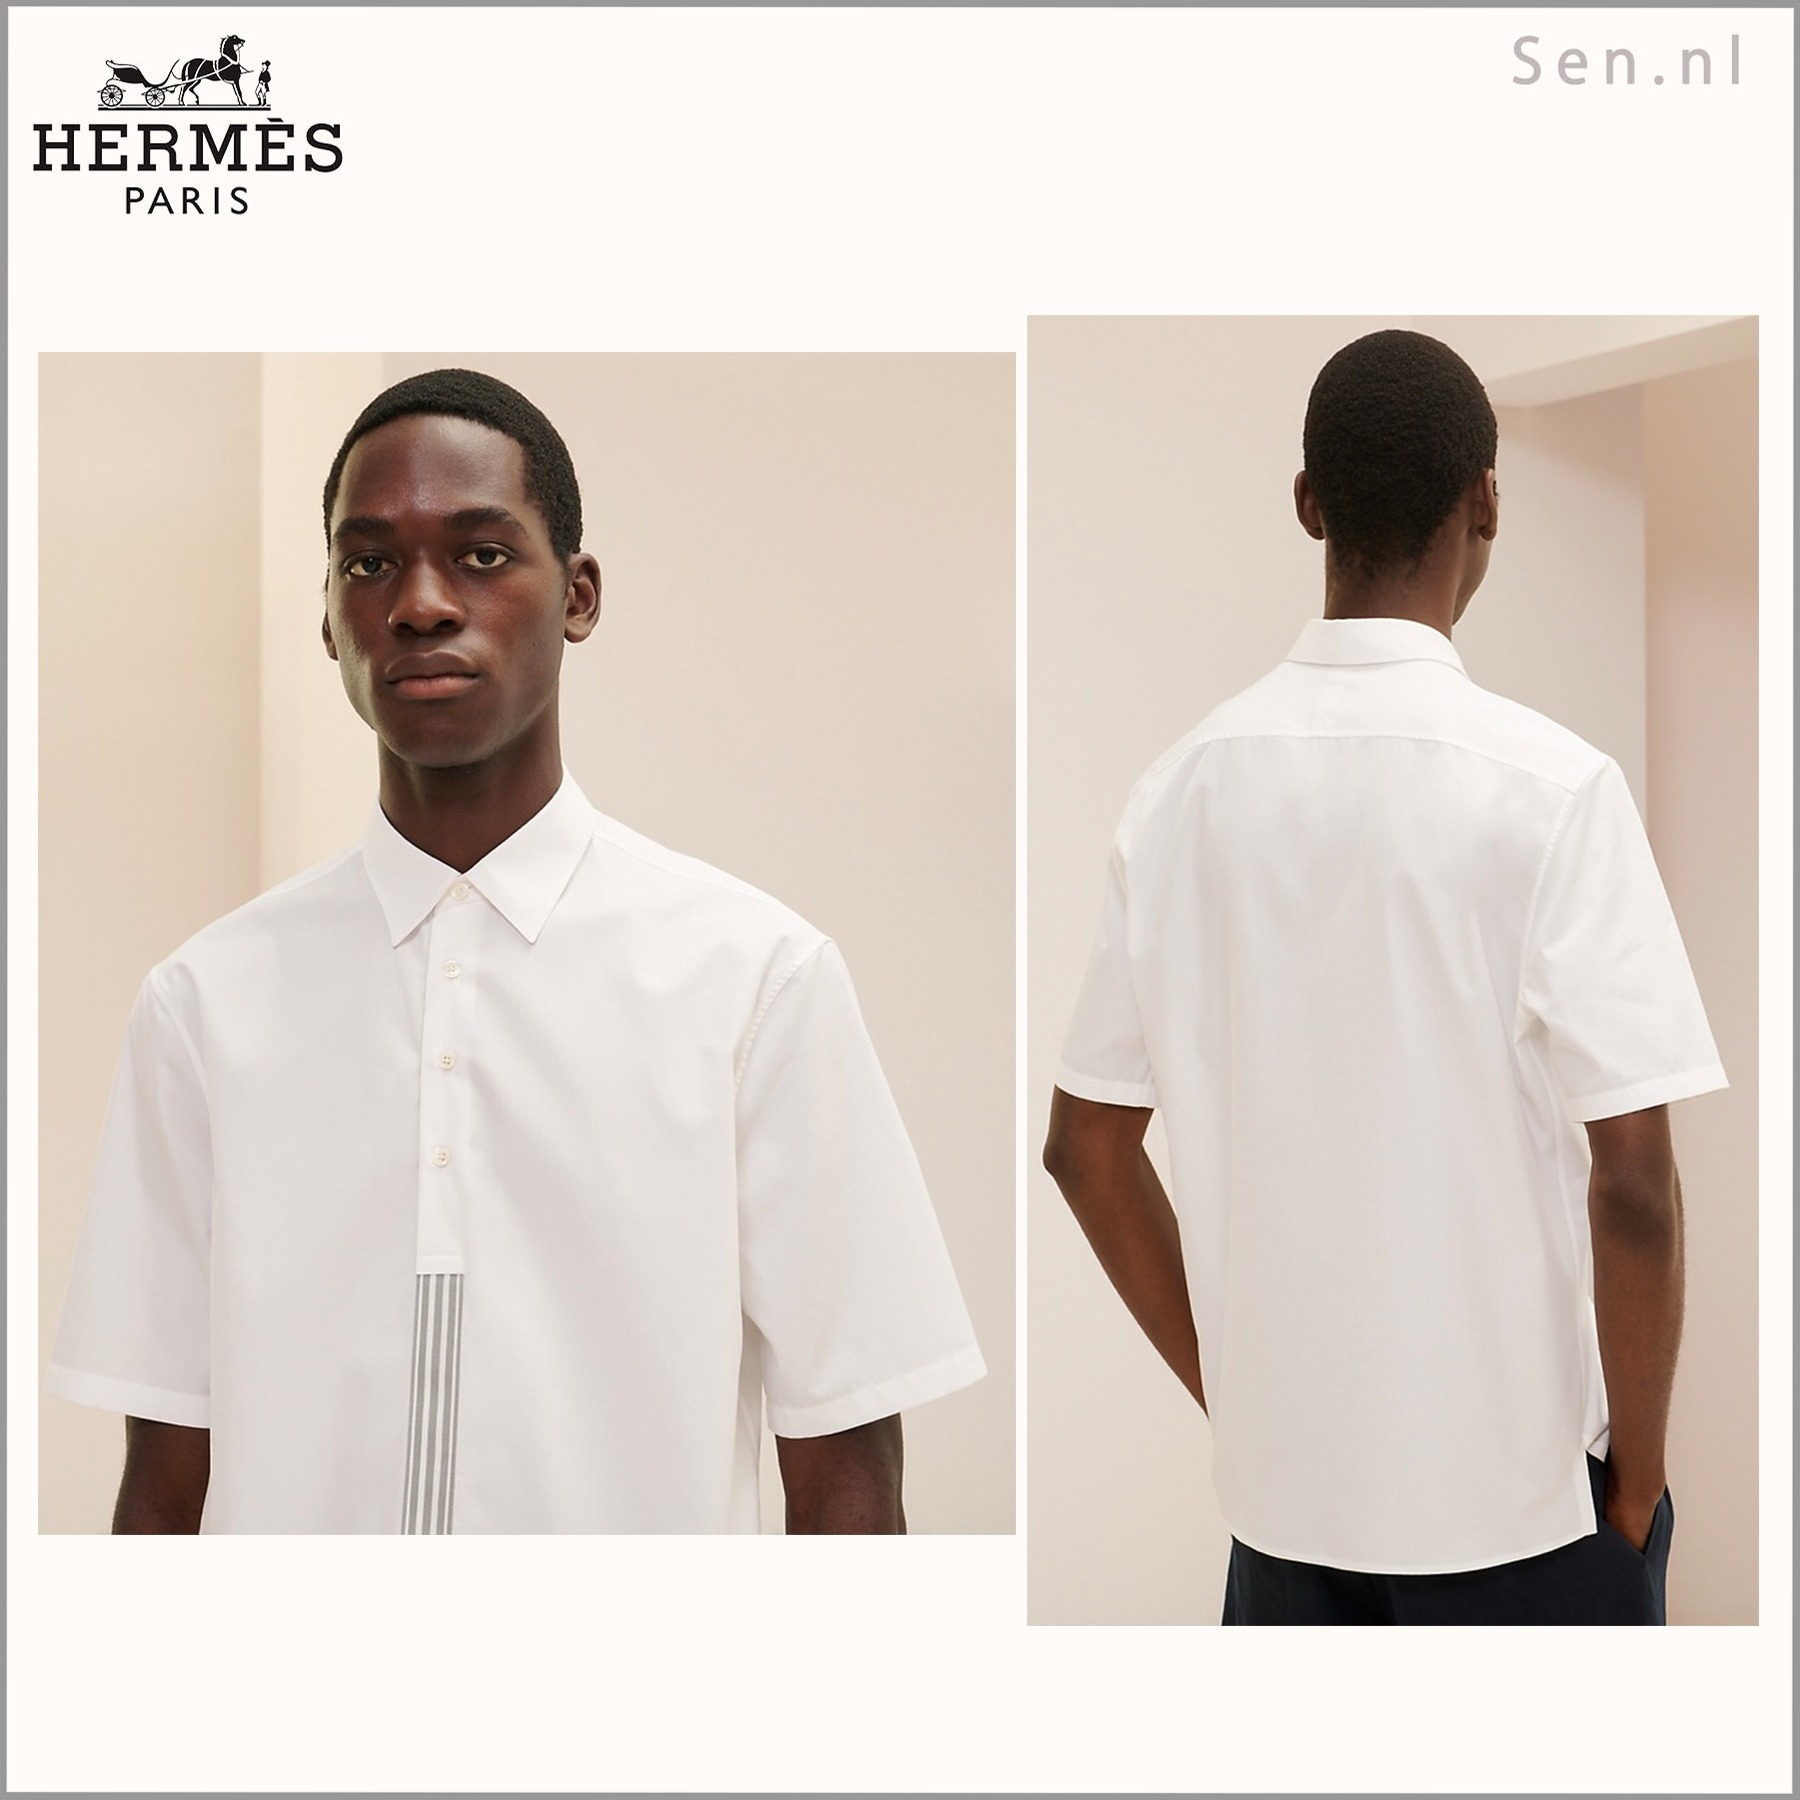 HERMES(エルメス) ポロシャツ《with striped ribbon detail》 (HERMES/シャツ) 64810351